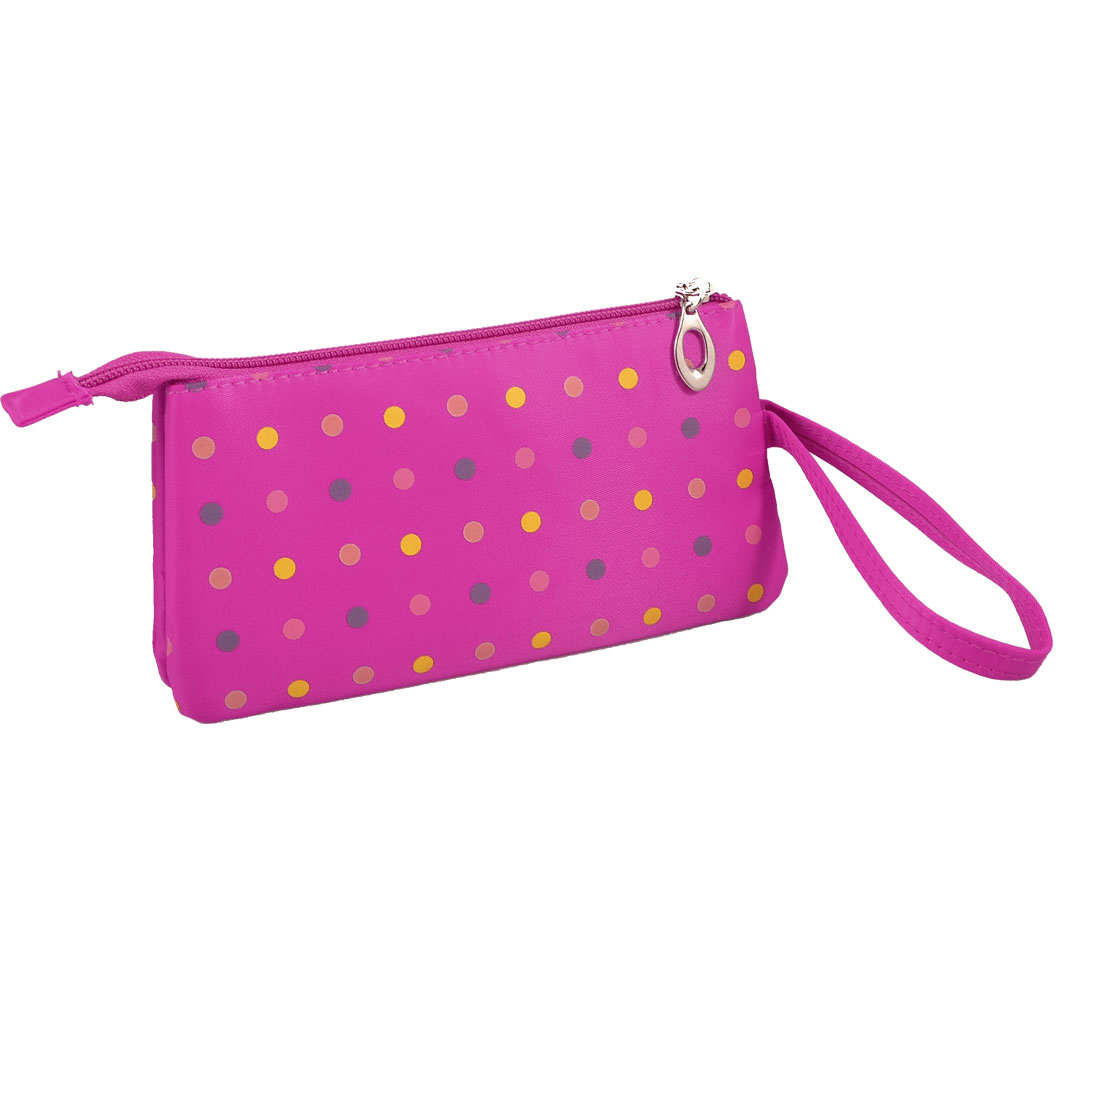 Travel Polka Dot 3 Compartment Wristlet Cosmetic Bag Pouch Fuchsia w Mirror